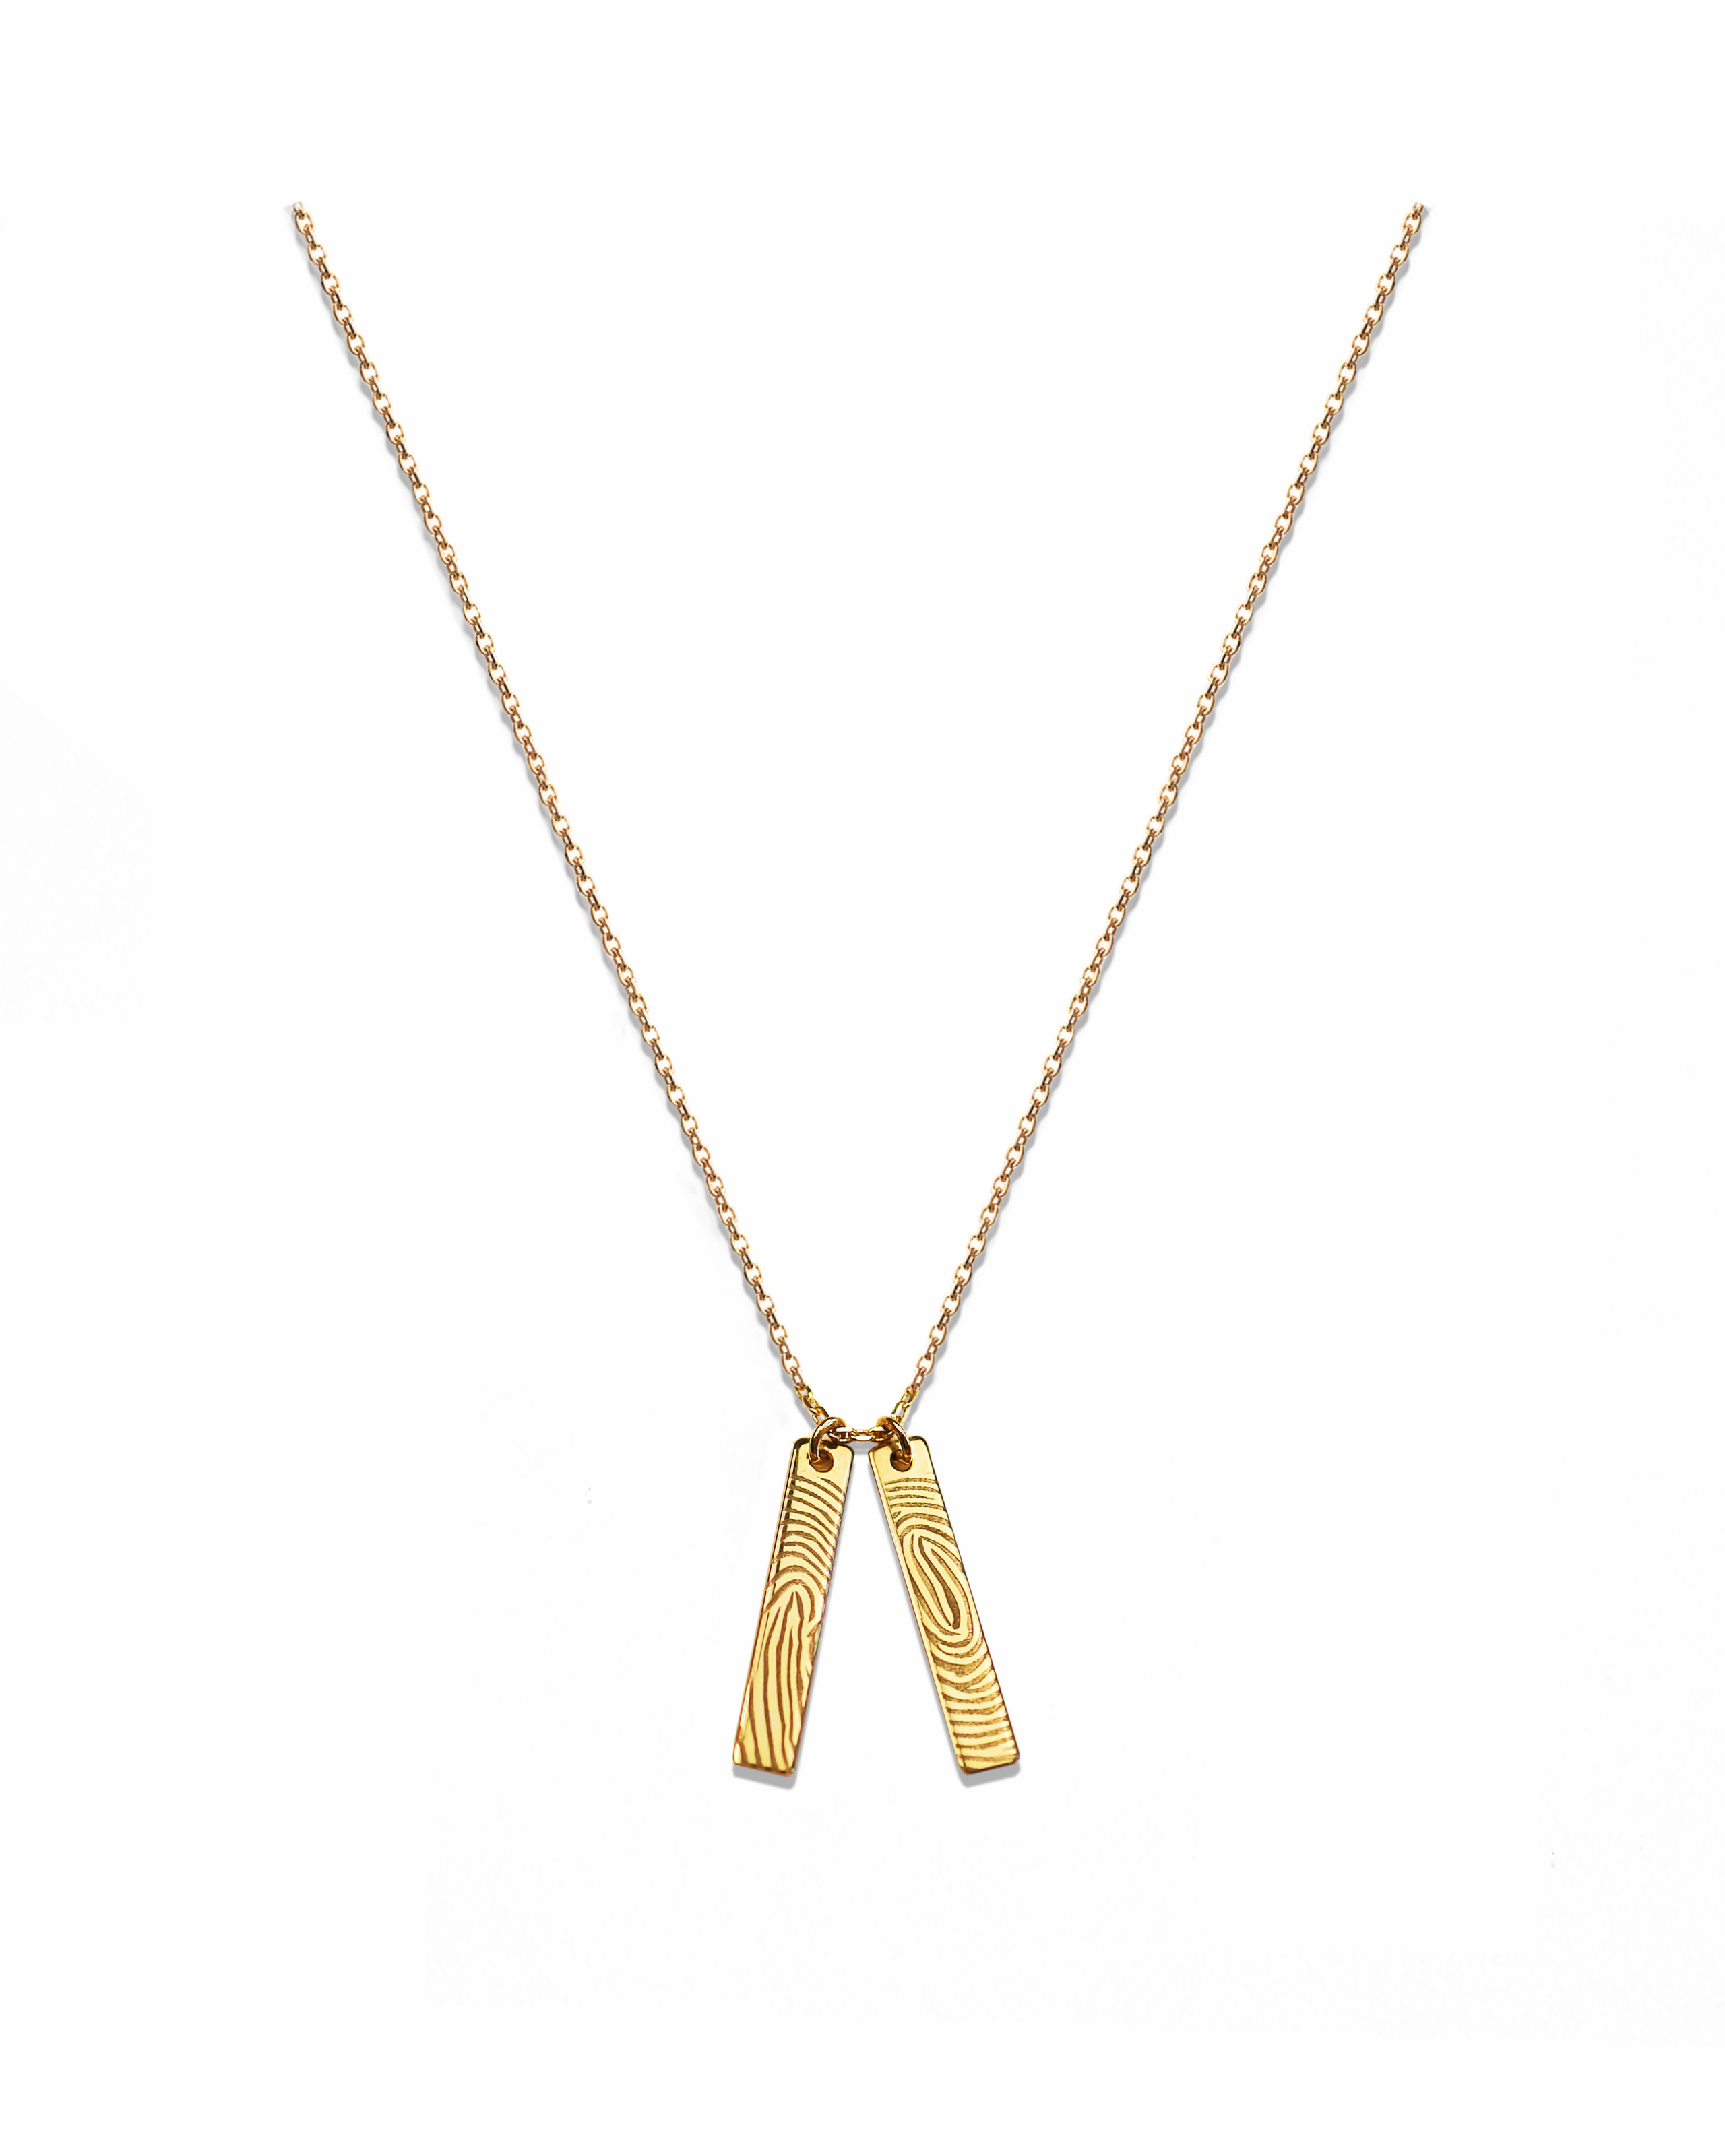 Double Tag Charm Necklace, Gold-Plated